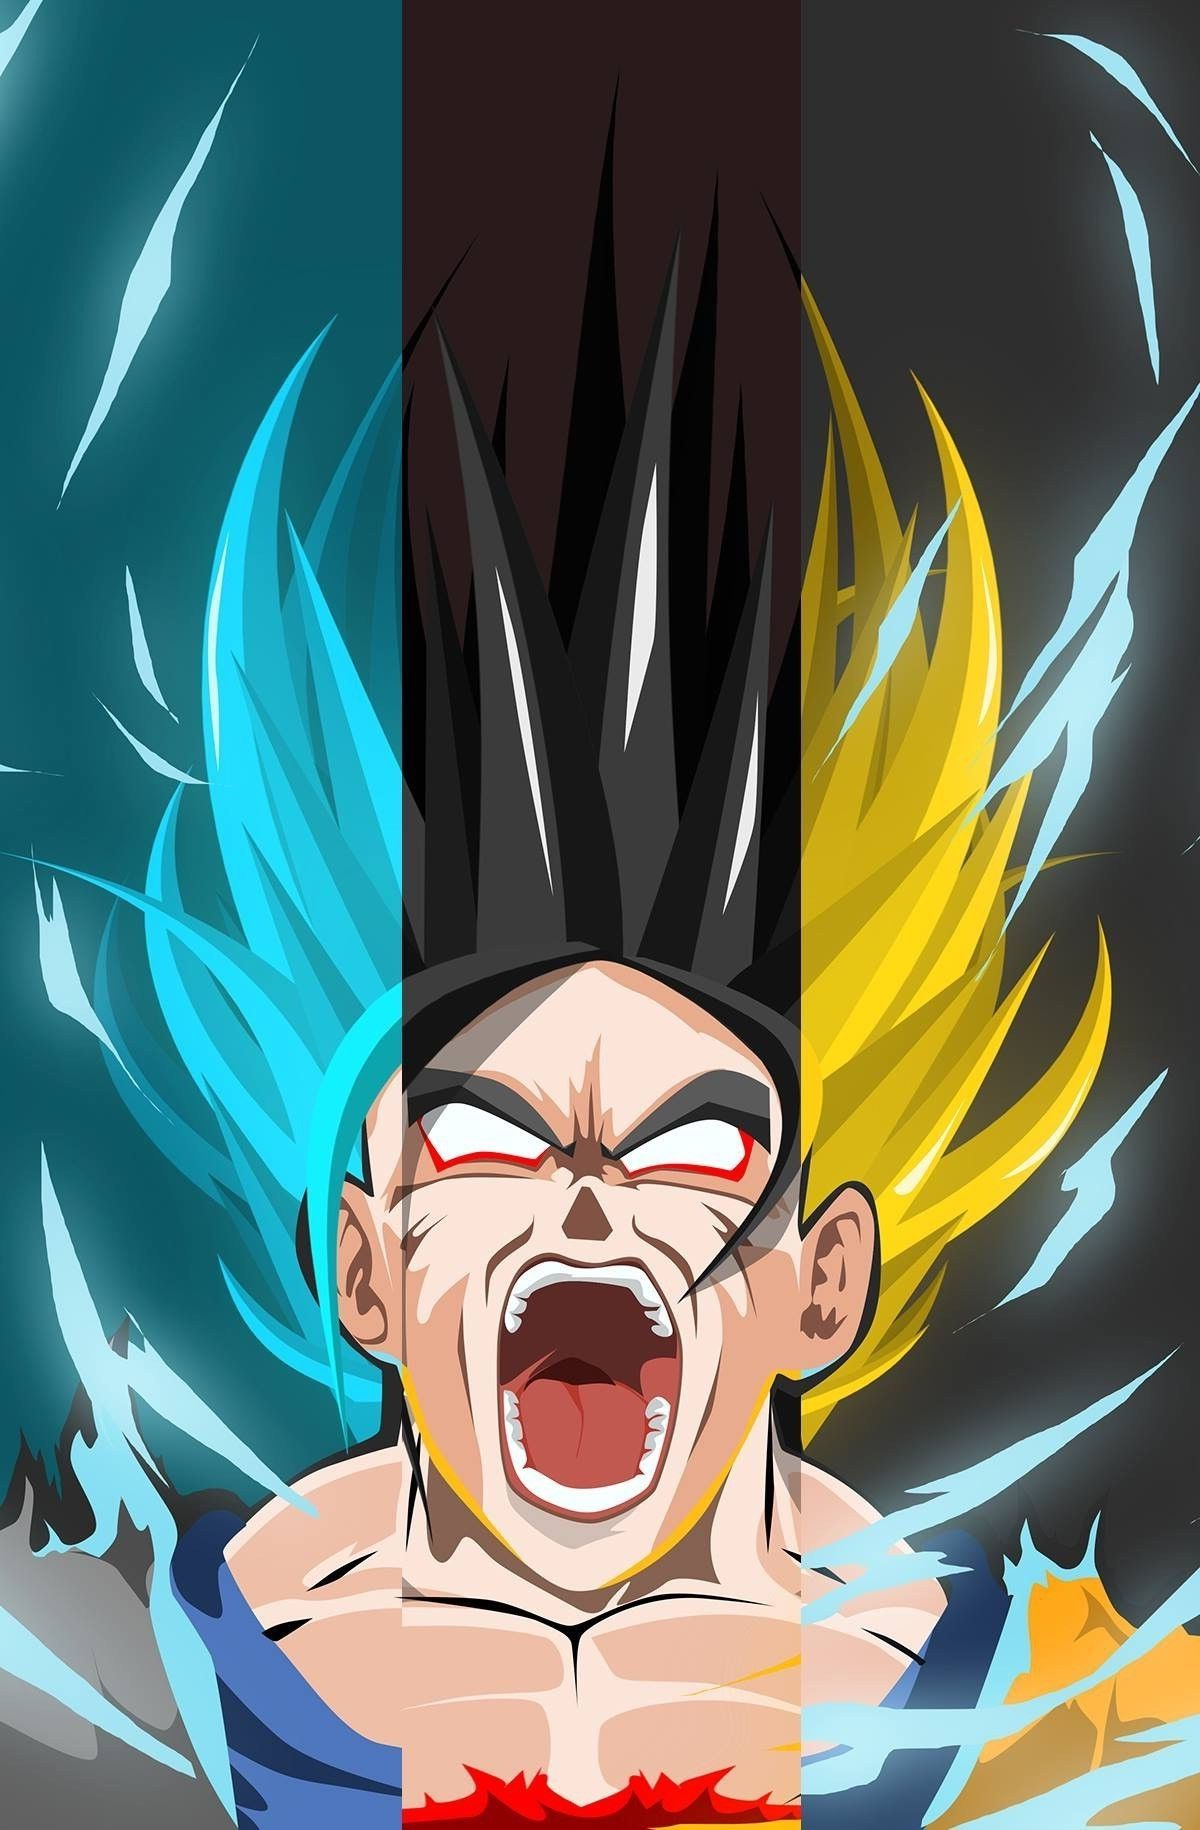 Dragon Ball Super Iphone Wallpapers Top Free Dragon Ball Super Iphone Backgrounds Wallpaperaccess